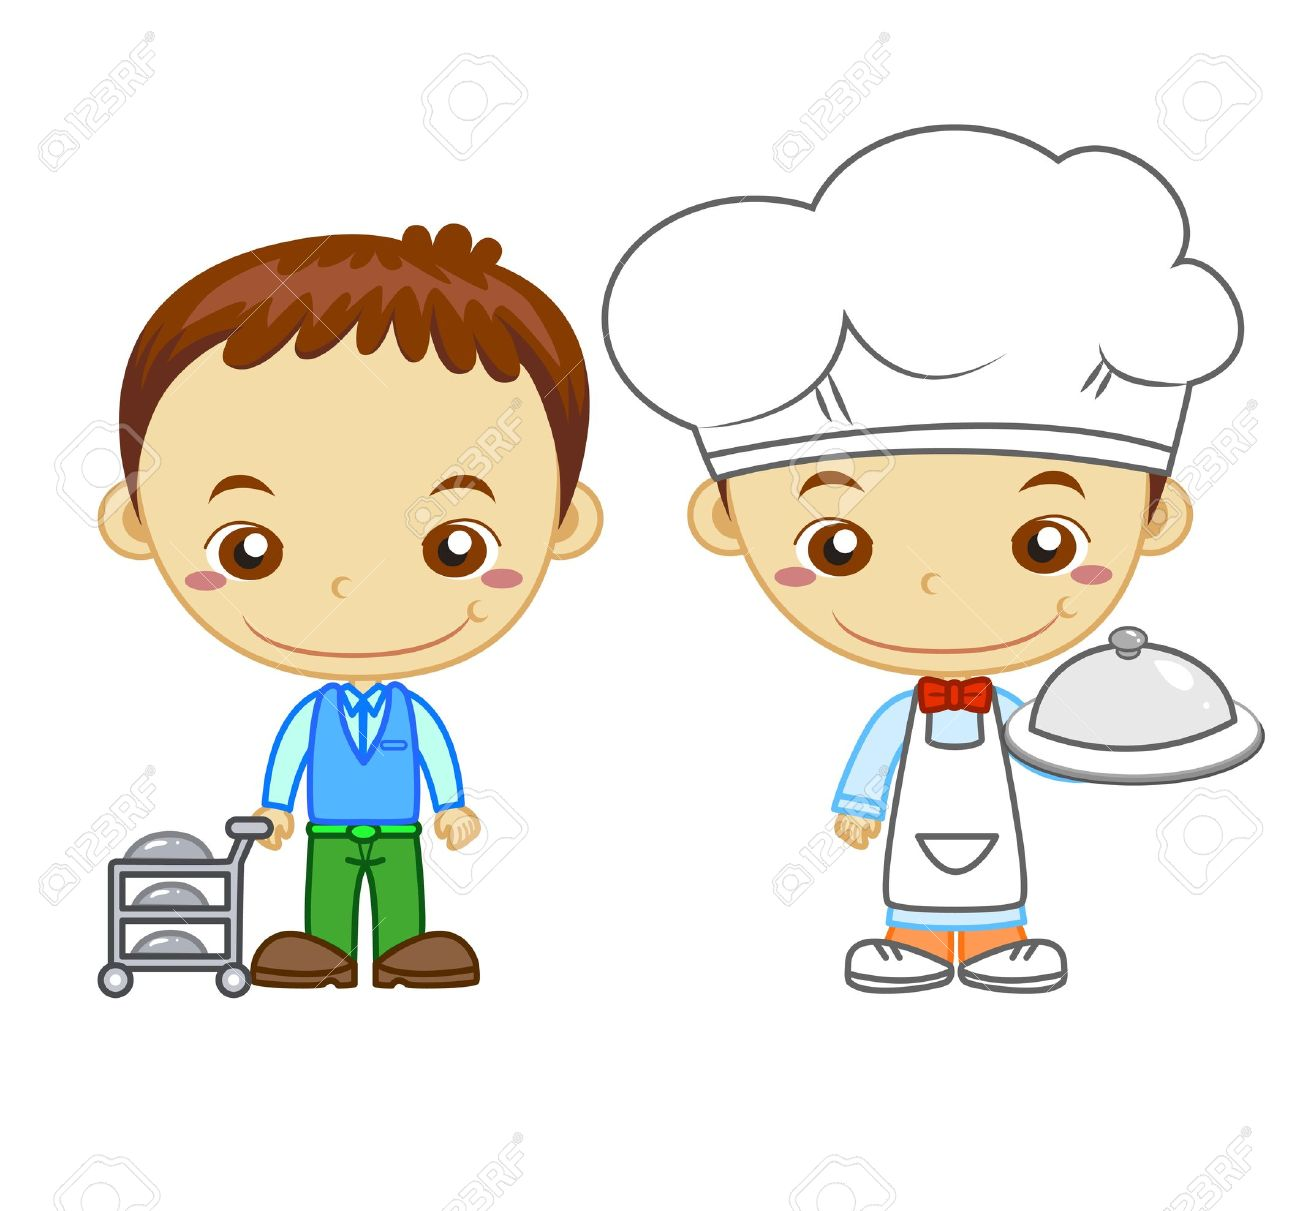 A cook and a restaurant waiter isolated on white background  Kids and Jobs series Stock Vector - 14721812